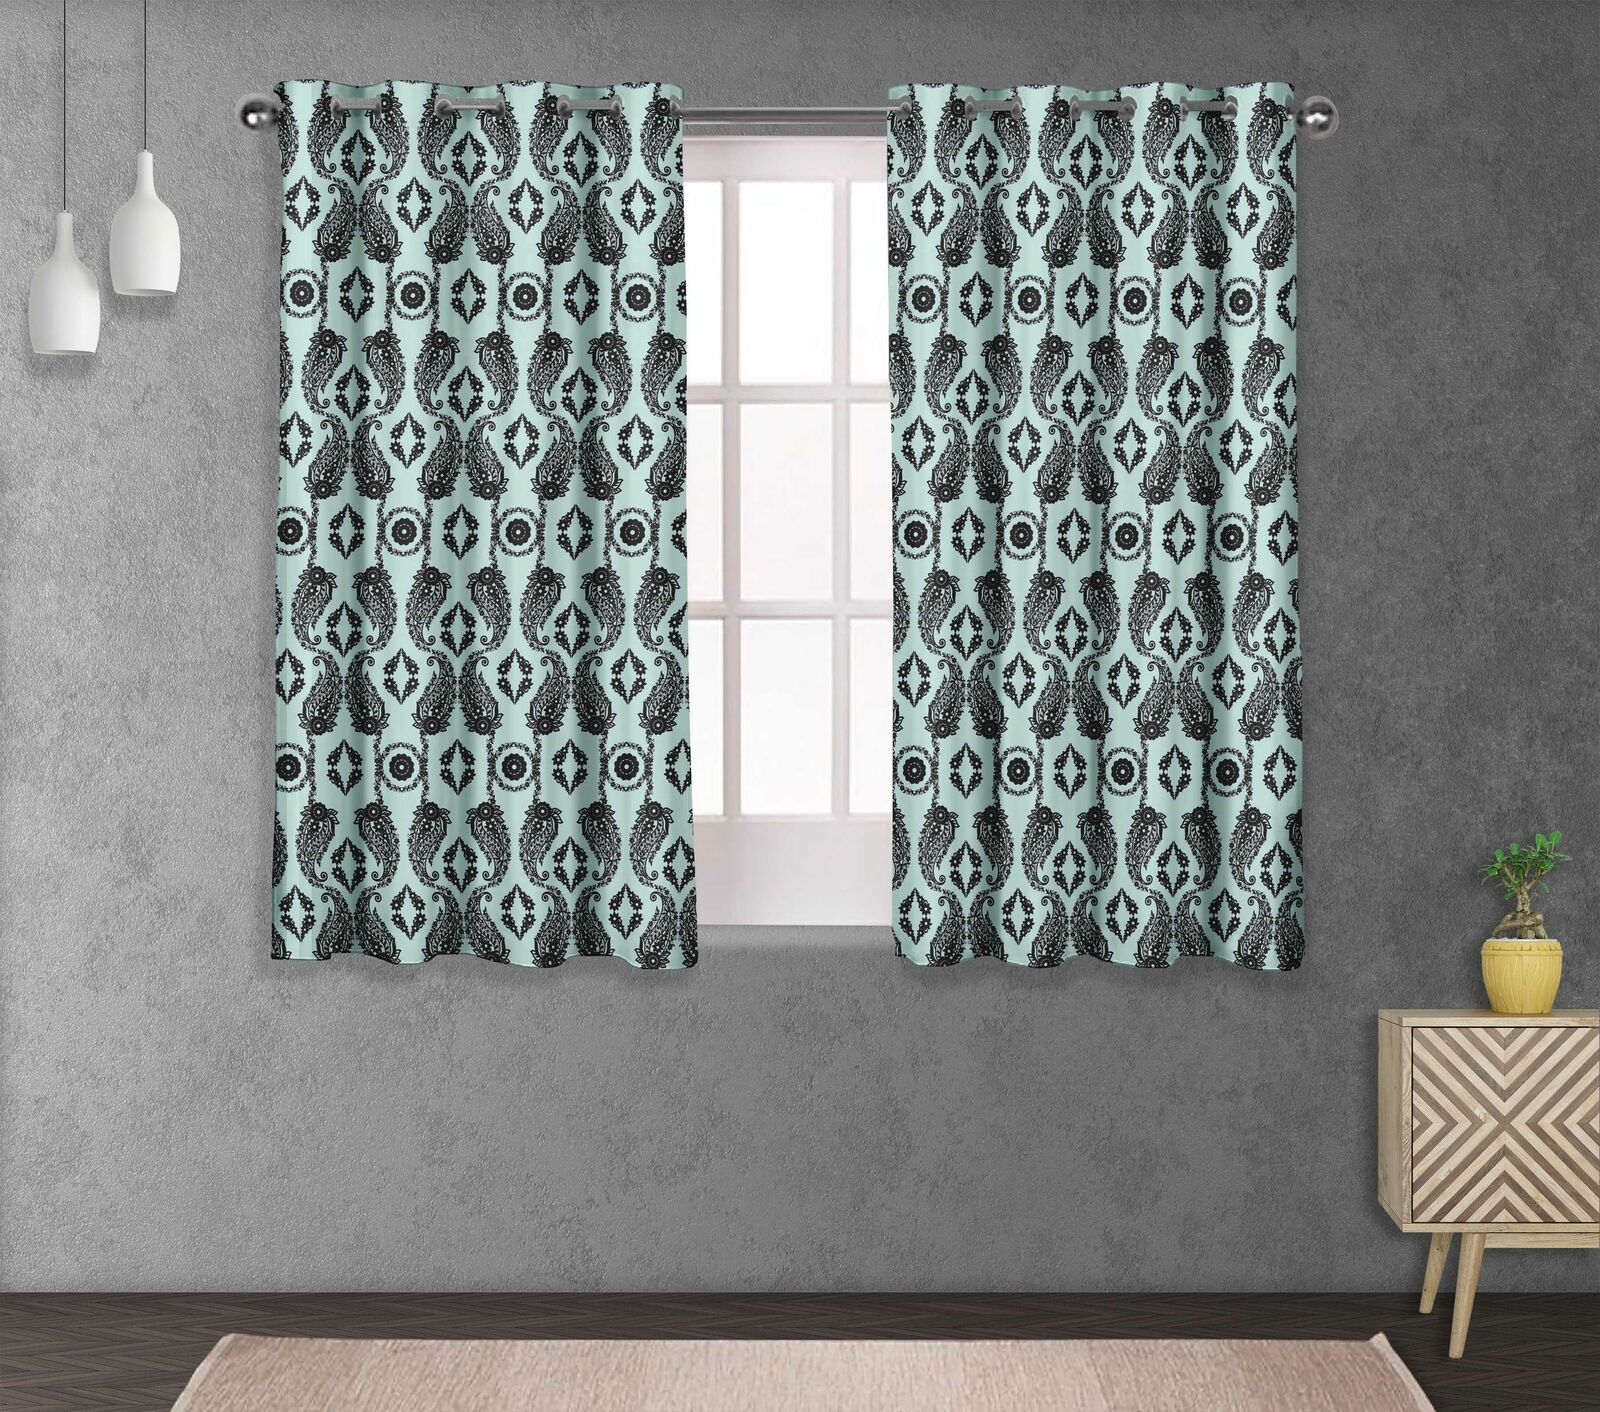 S4sassy Paisley & Living Room Eyelet Curtain Drapers -FL-696D